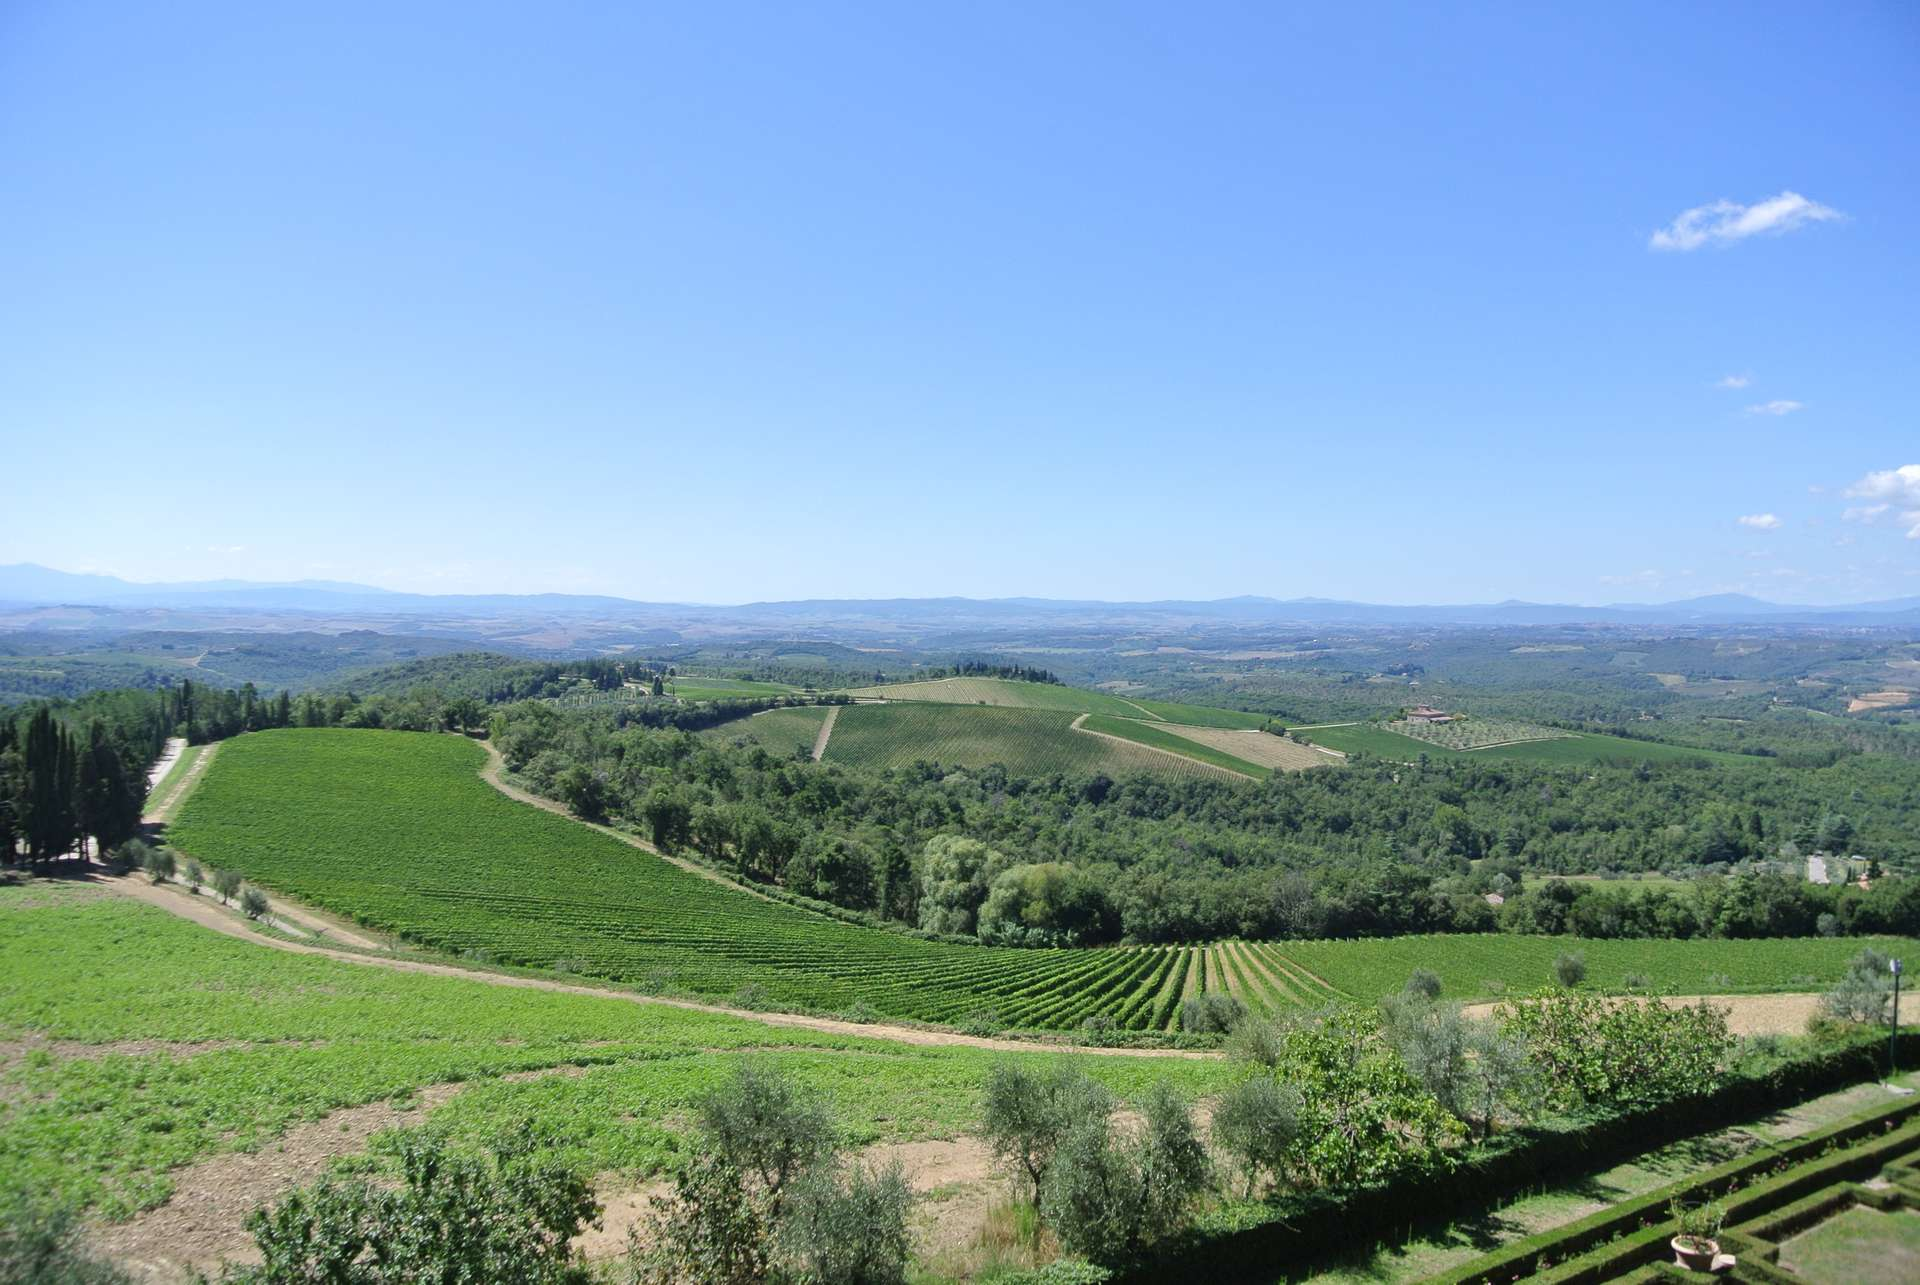 View from Brolio